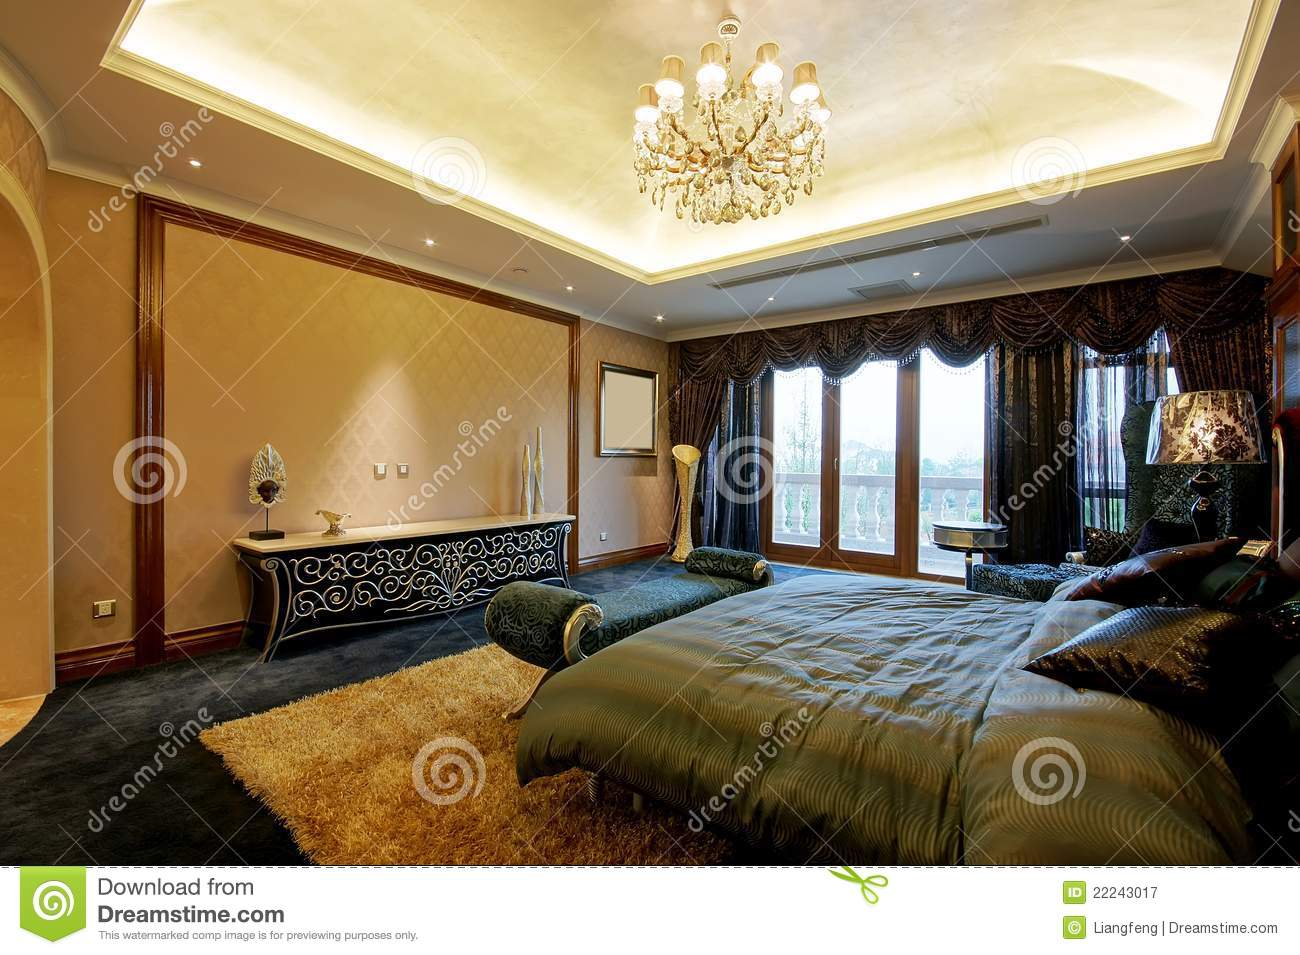 Large bedroom royalty free stock photography image 22243017 - Image bed room ...